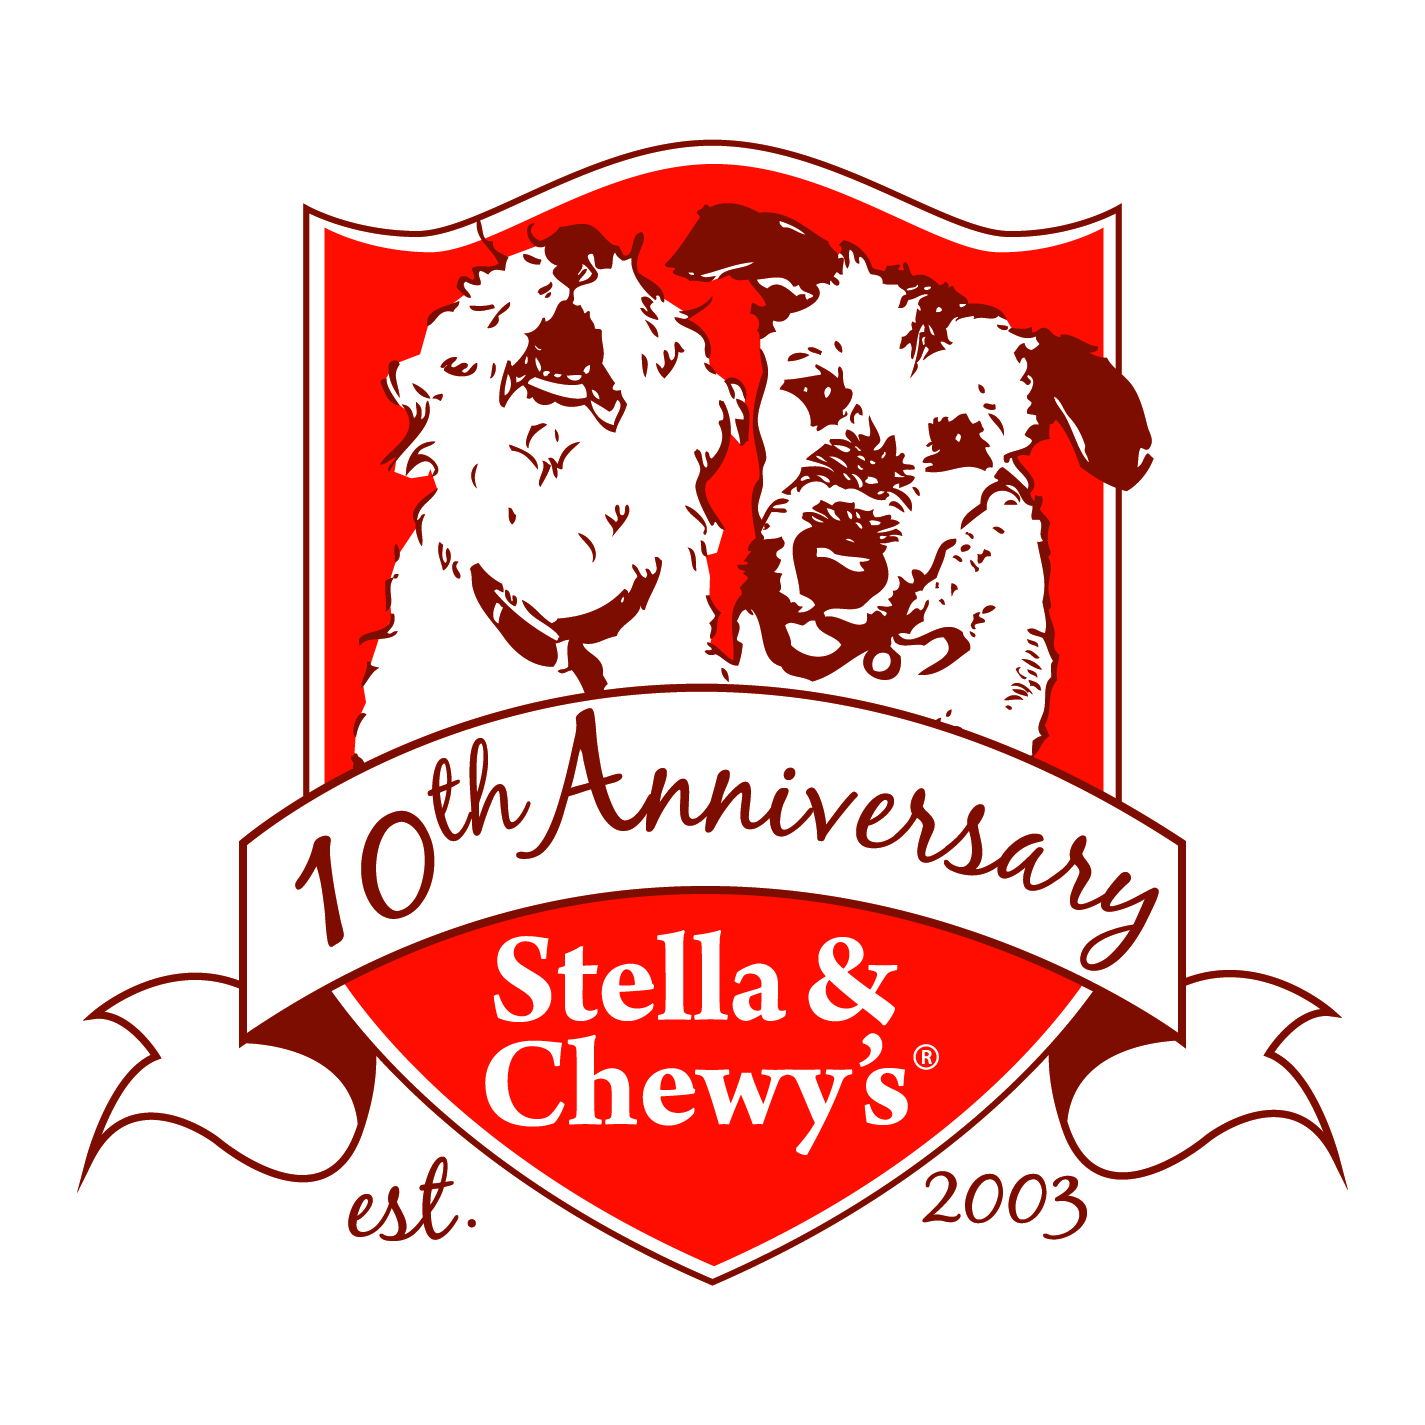 Public Leadership: Celebration With Stella & Chewy's